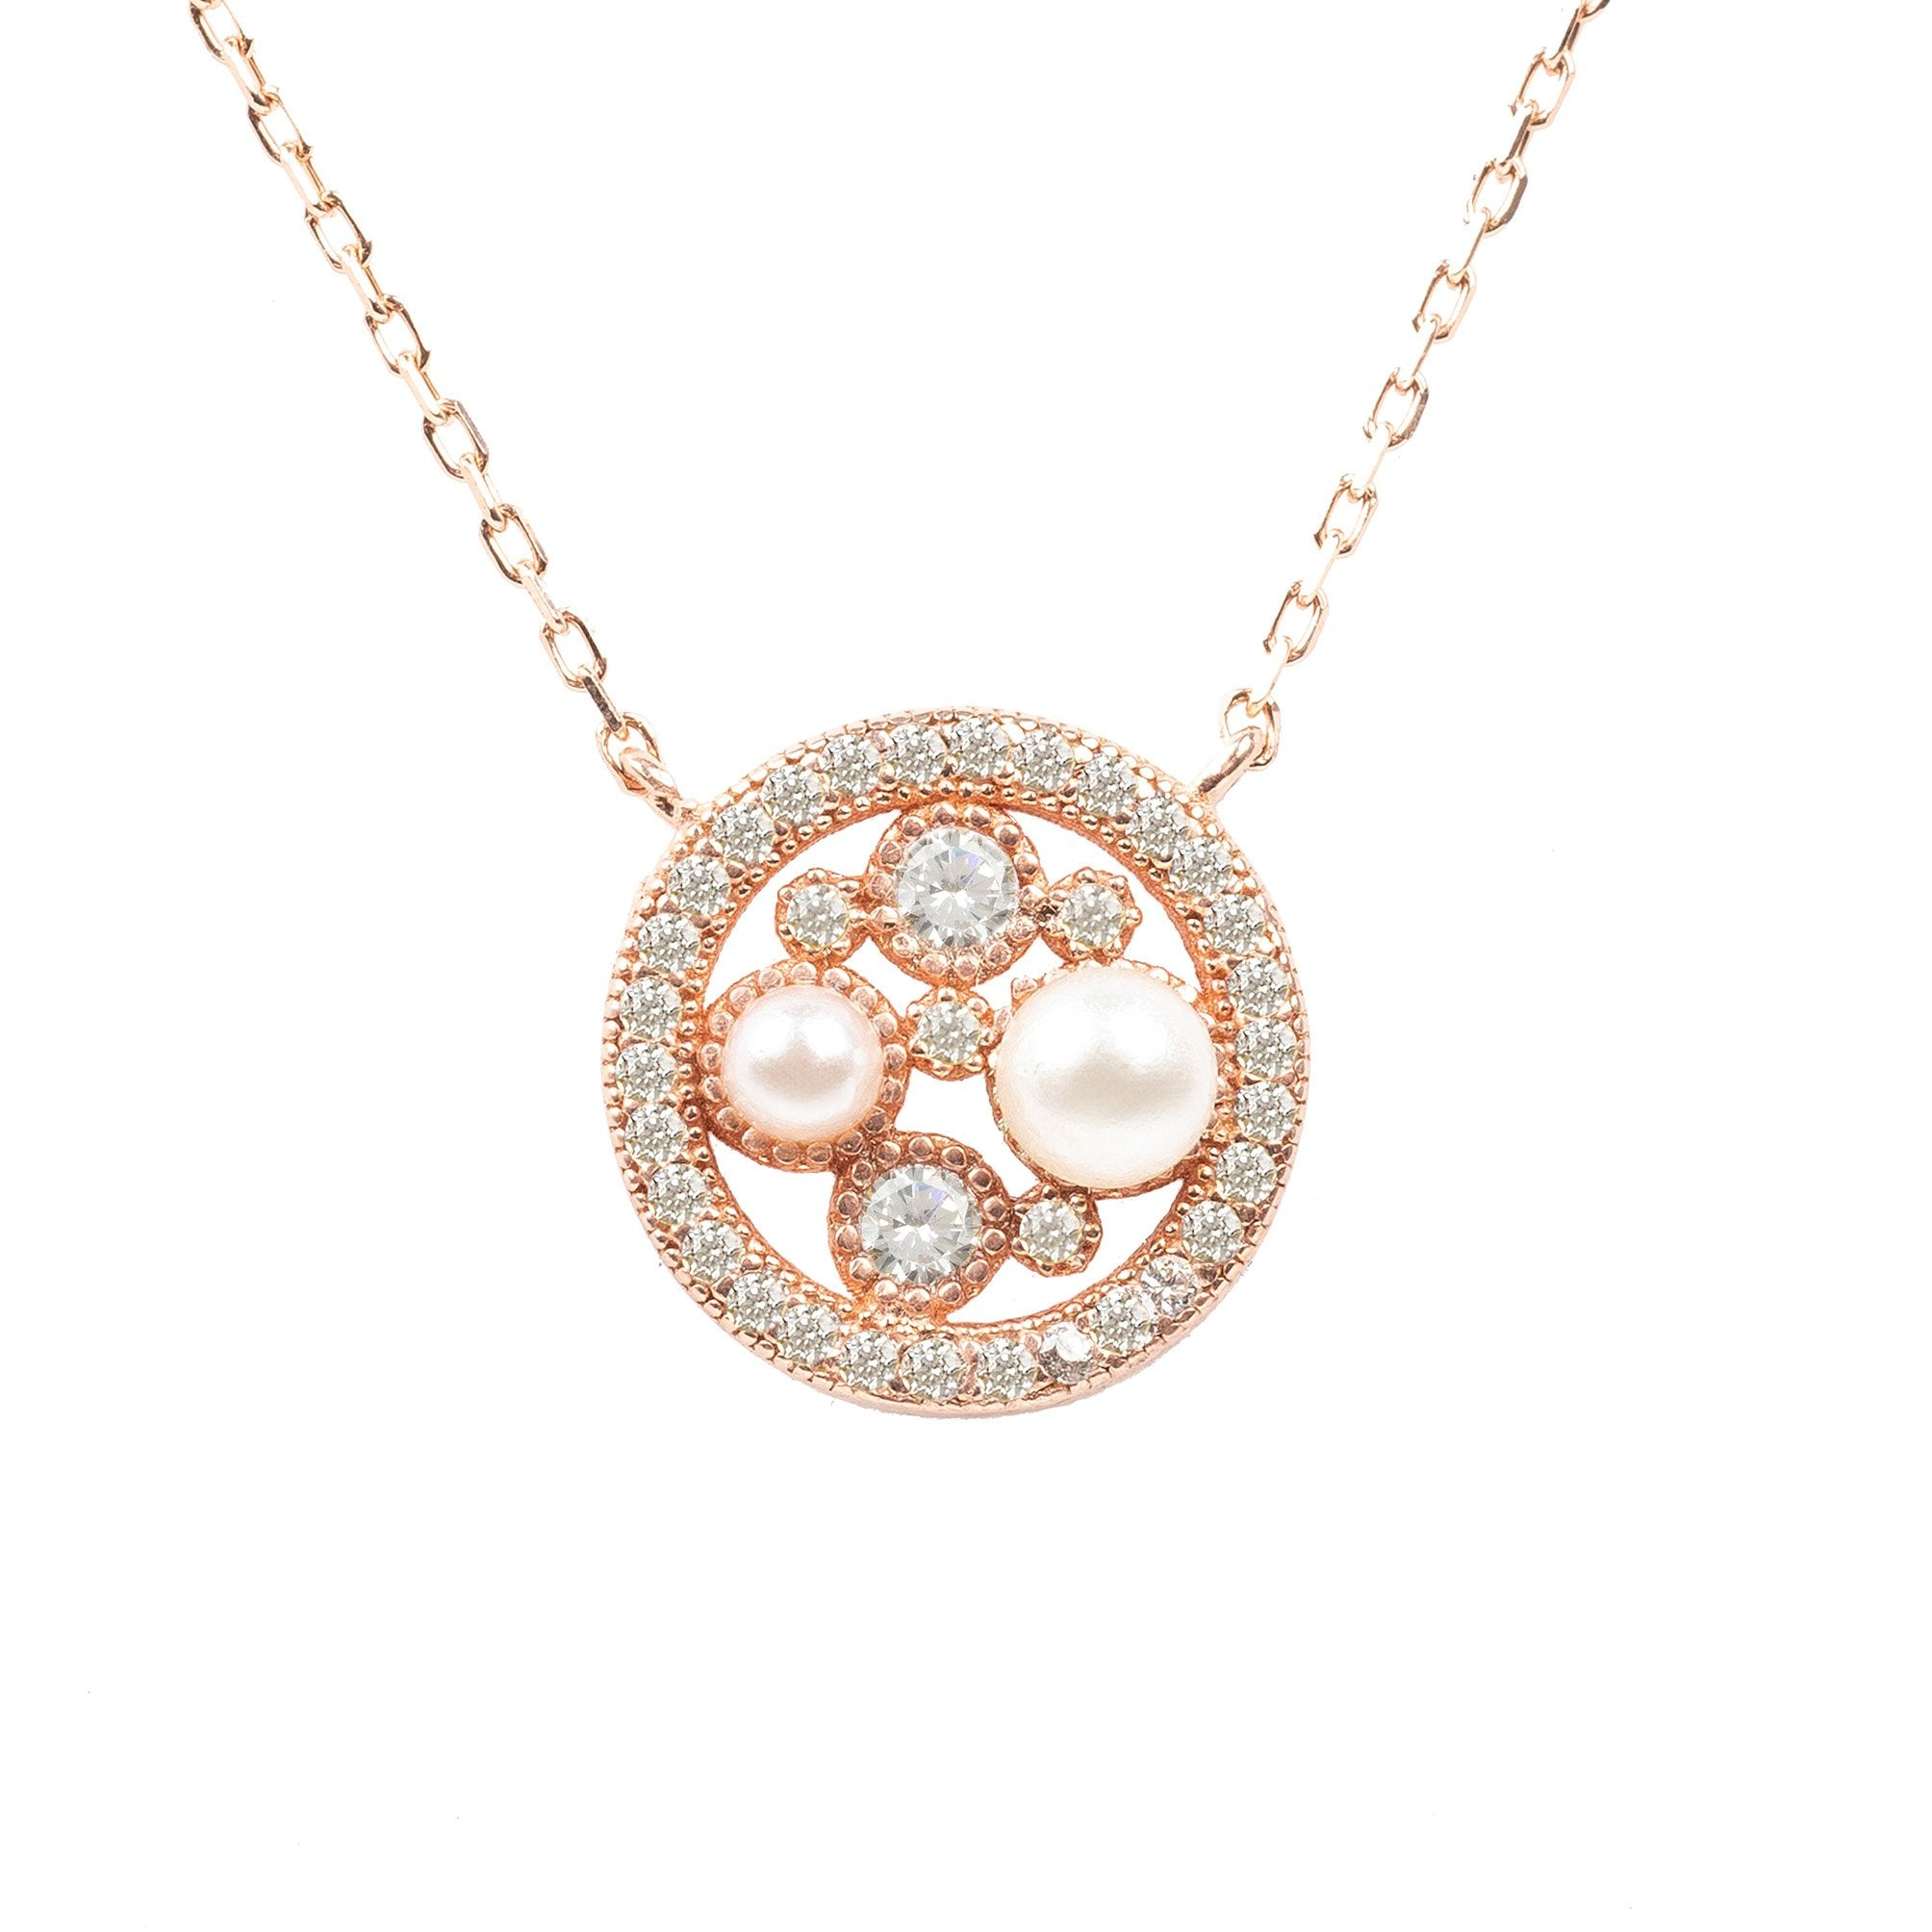 Latelita - Lulu White Pearl Rosegold Pendant Necklace